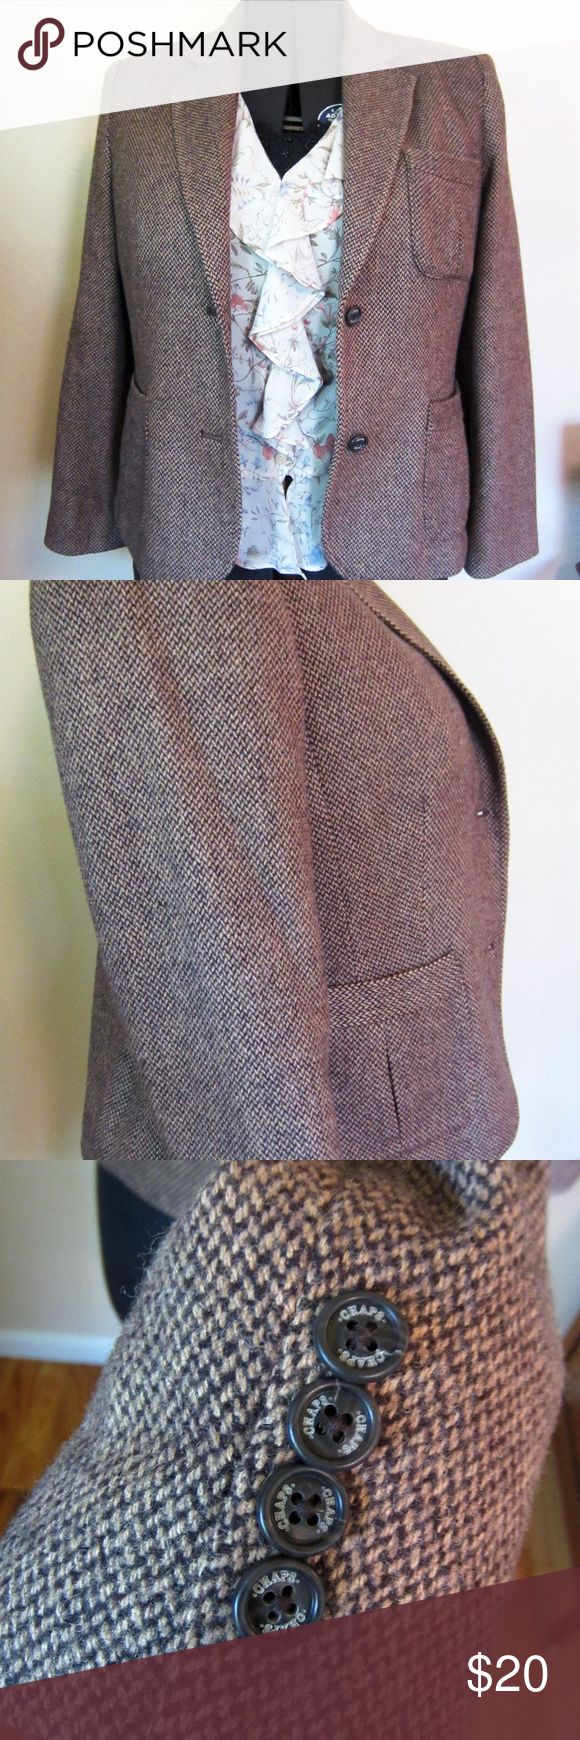 Chaps by Ralph Lauren Tweed type Jacket/blazer EUC Versatile two button tweed type jacket goes to work over a blouse or play paired with jeans and booties. Classic 4 button sleeve detail.  Fabric Content: 60% viscose/ 40%wool with 100% polyester lining  Belle the Acme mannequin is sized at: XL/1X with a DD bust   Pairs beautifully with these pants in my closet: https://poshmark.com/listing/Lee-Relaxed-Fit-Pants-59a1bba641b4e0d33c0184c4  And this blouse in my closet…